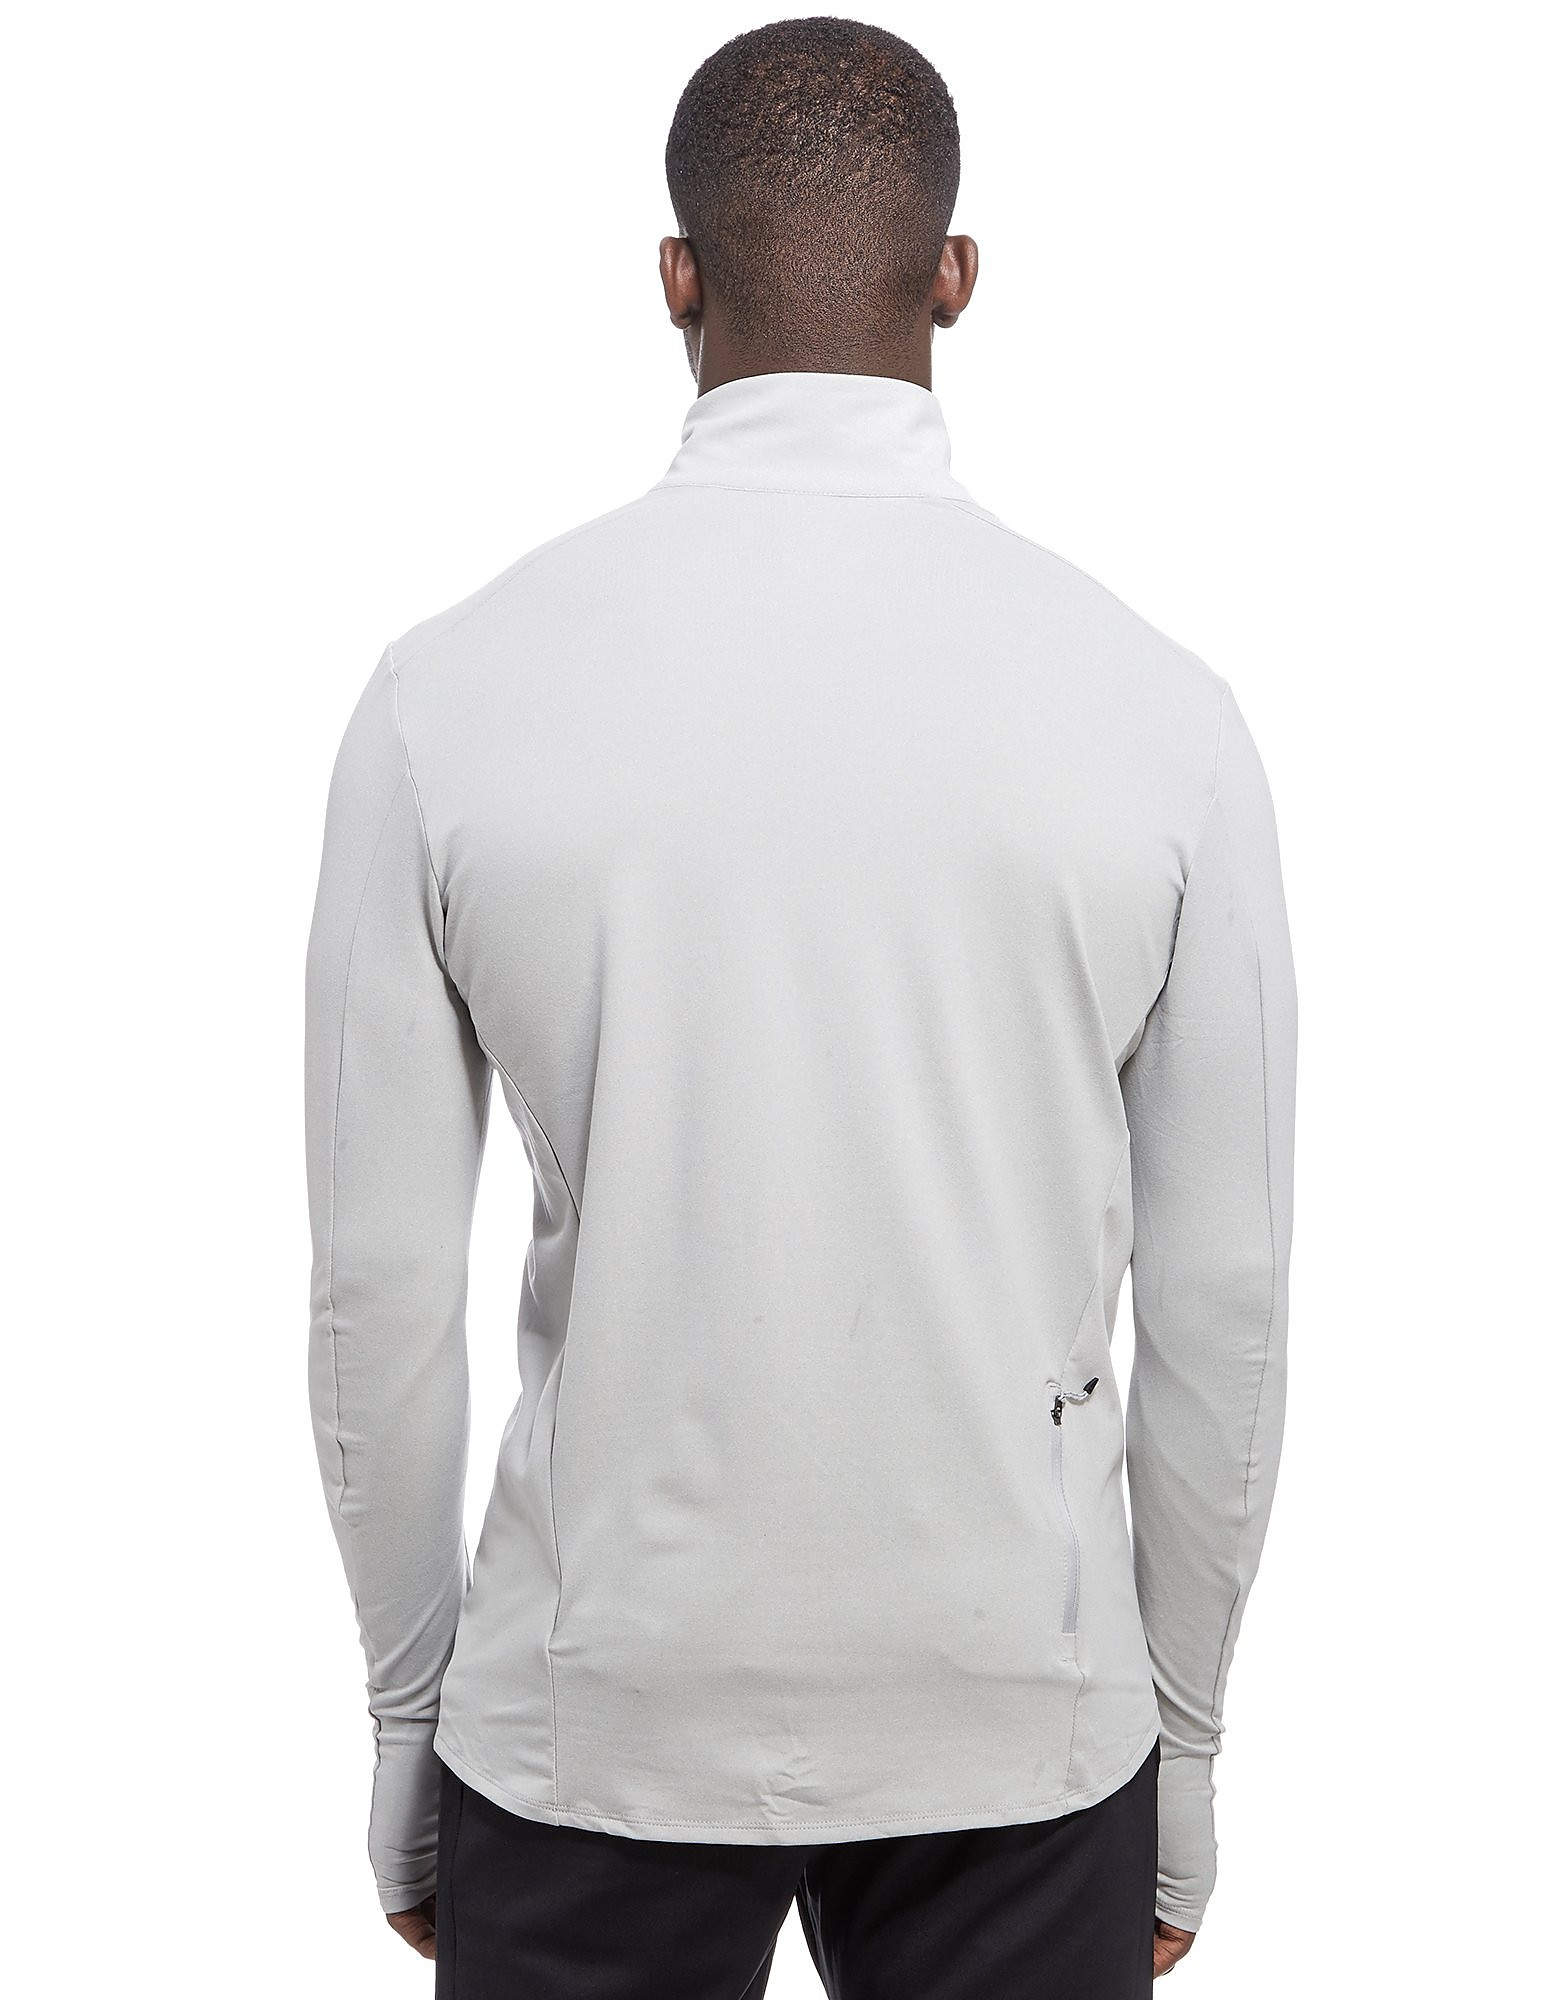 adidas Supernova 1/2 Zip Sweatshirt